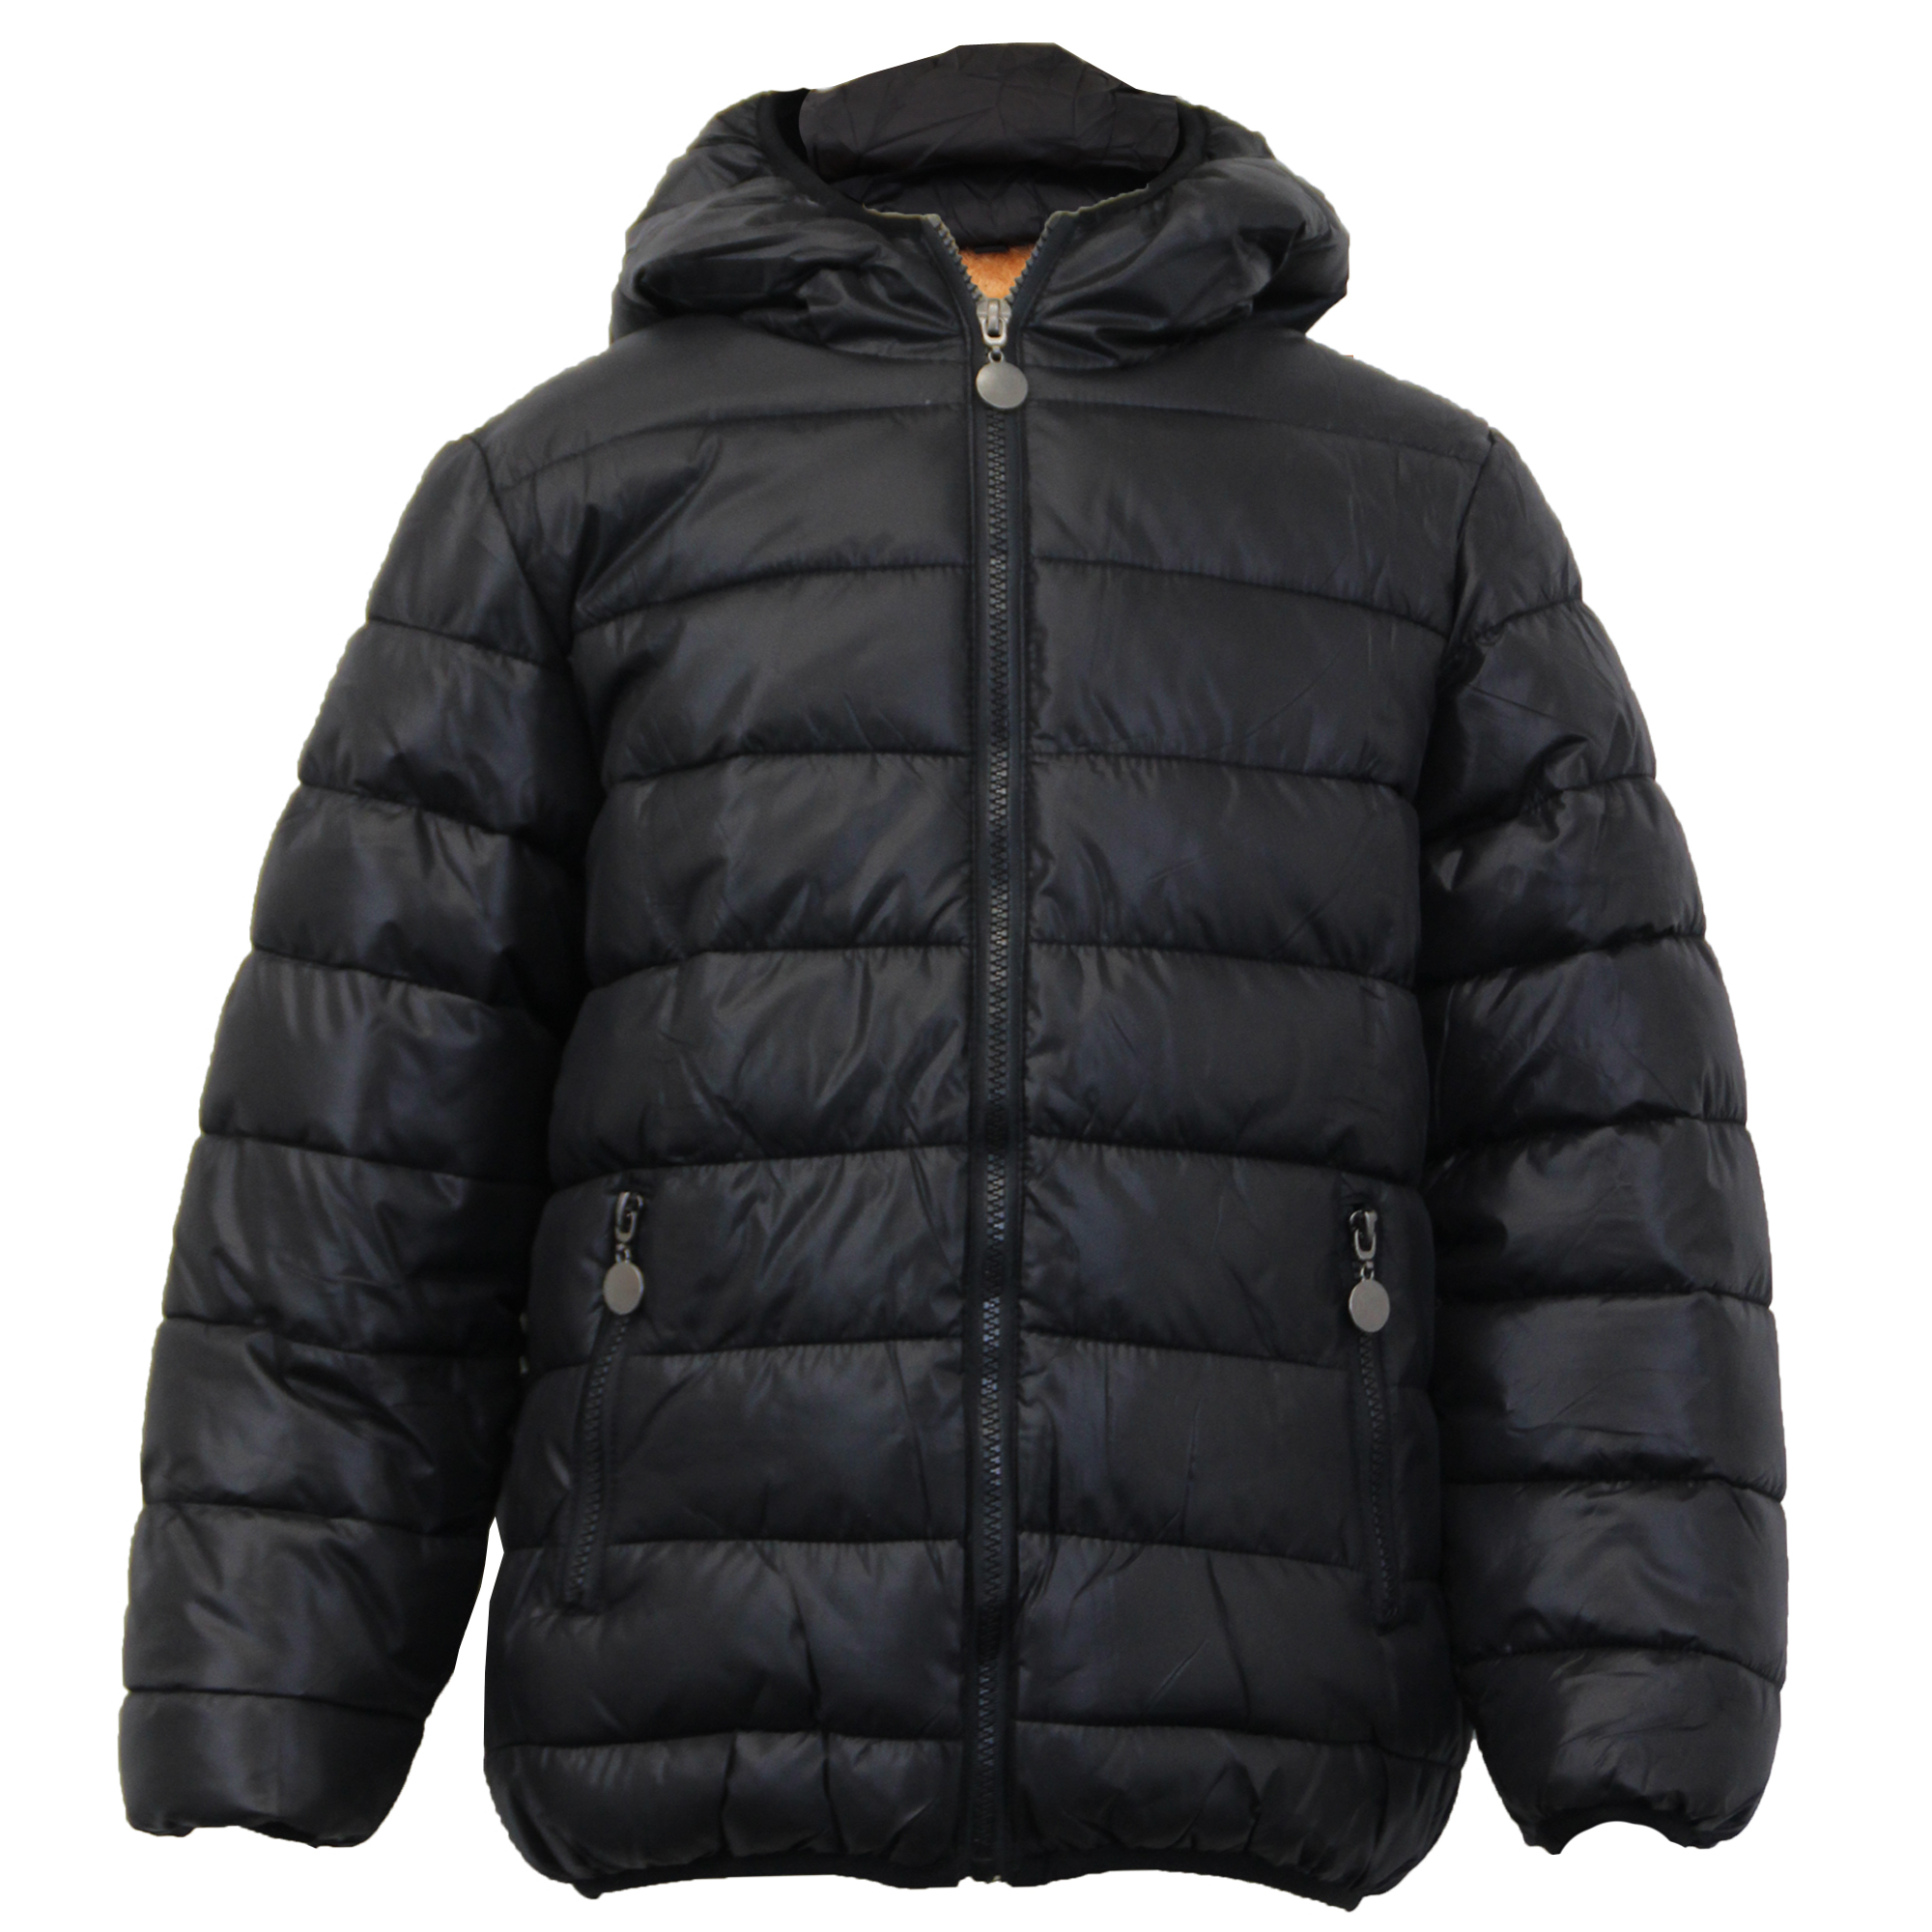 Find great deals on eBay for boys fleece lined coat. Shop with confidence.